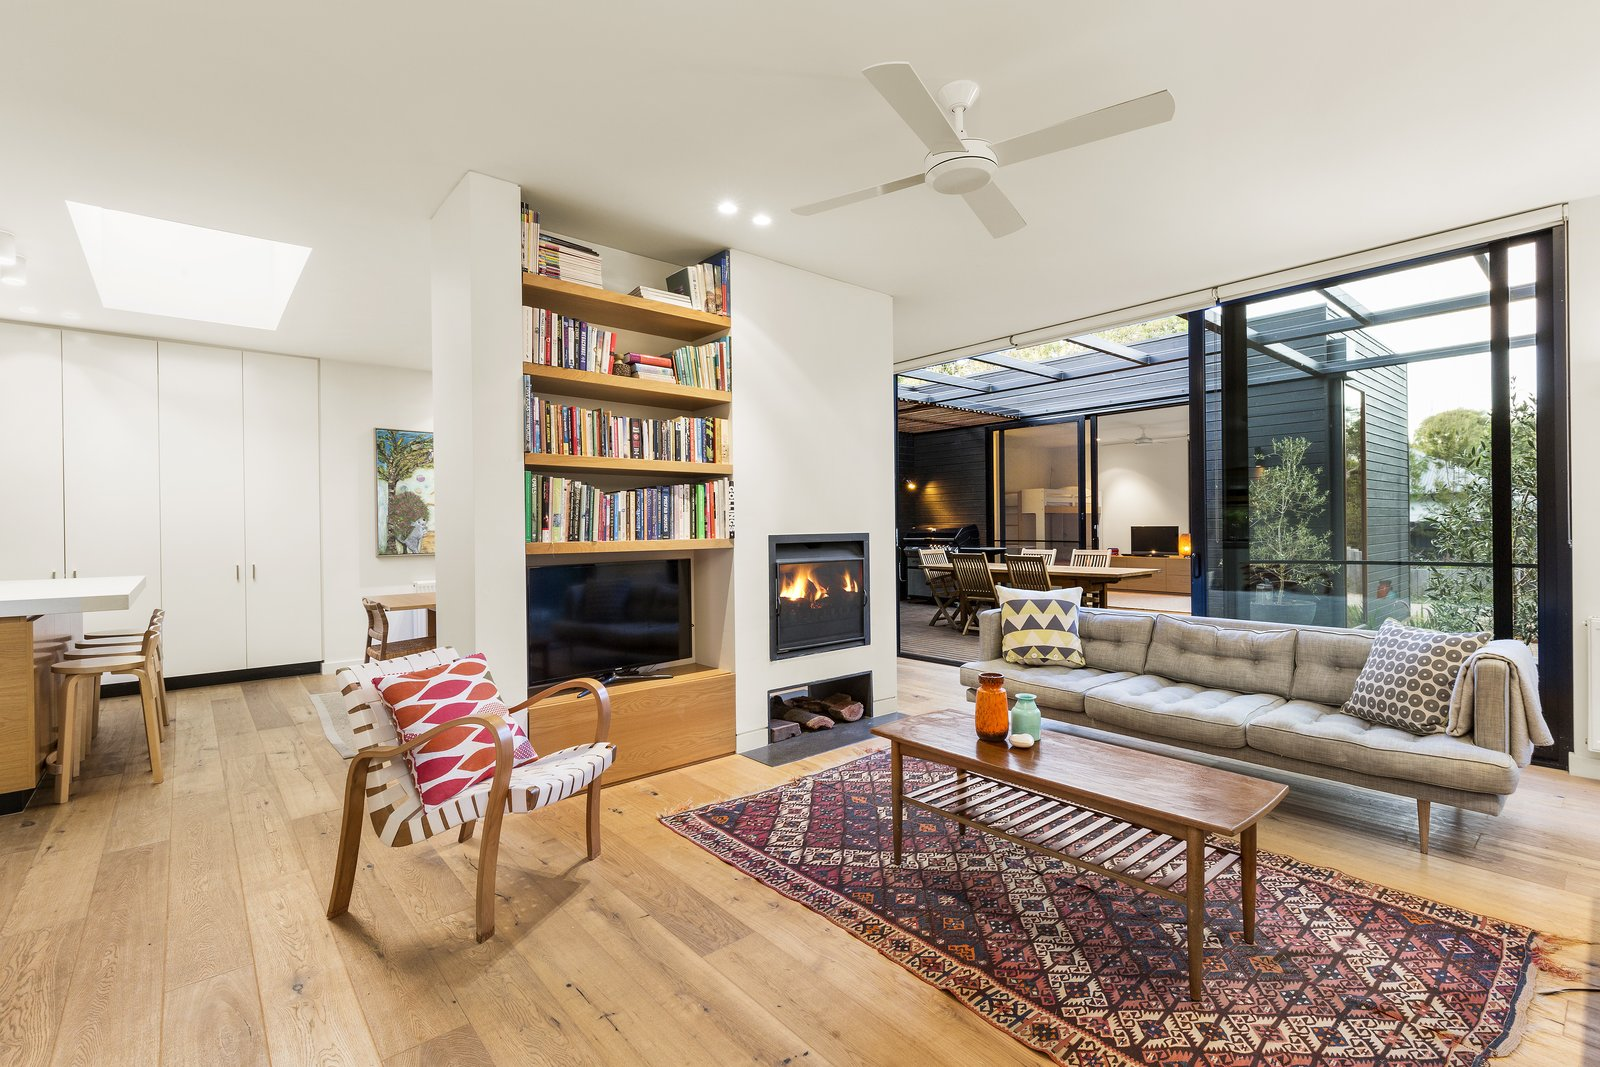 Tagged: Living Room, Coffee Tables, Sofa, Chair, Two-Sided Fireplace, and Medium Hardwood Floor. The Merricks Beach House by Prebuilt